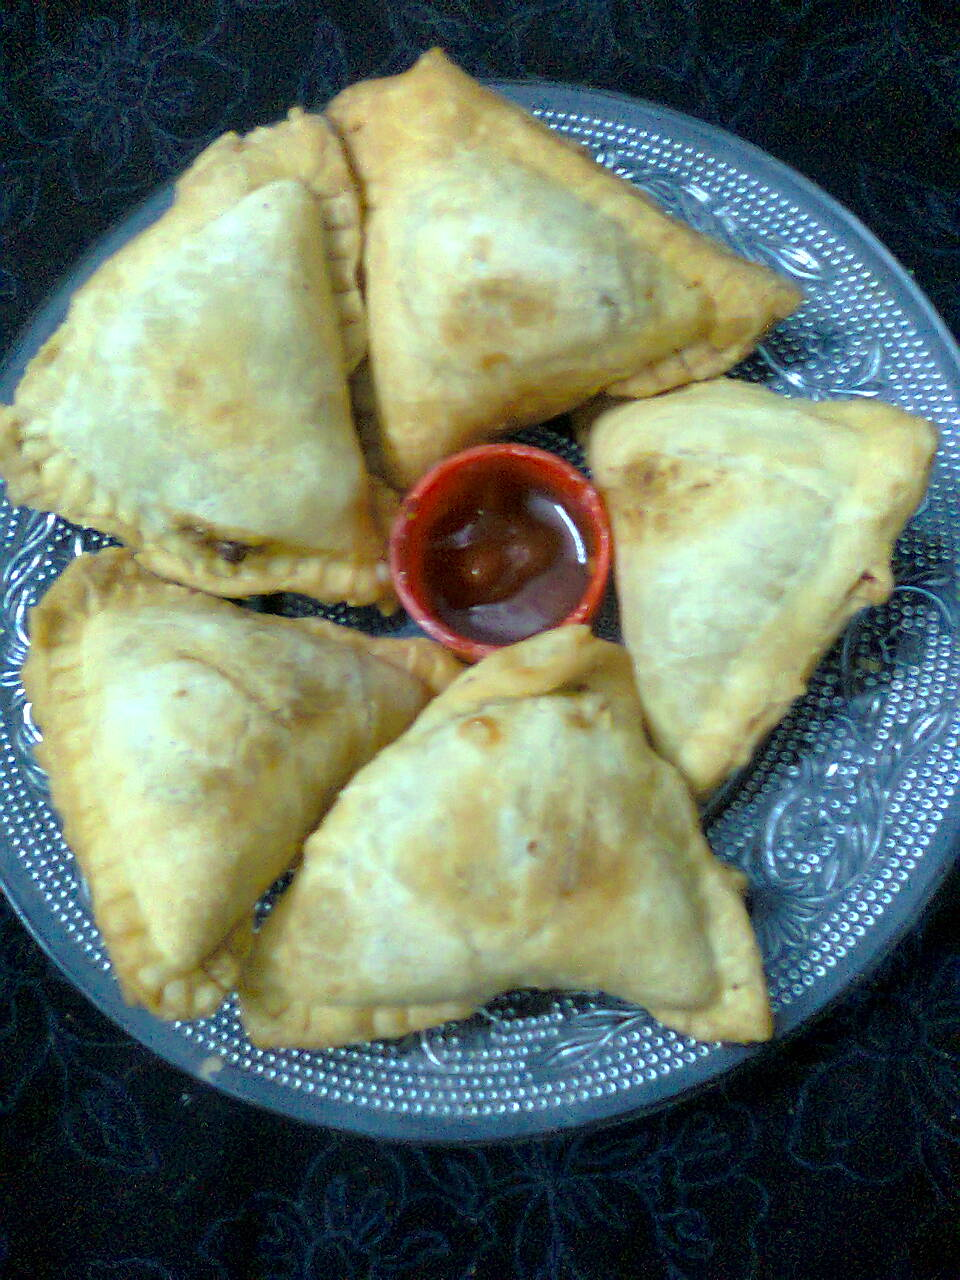 Quick And Easy To Make Snacks (Egg Stuffed)